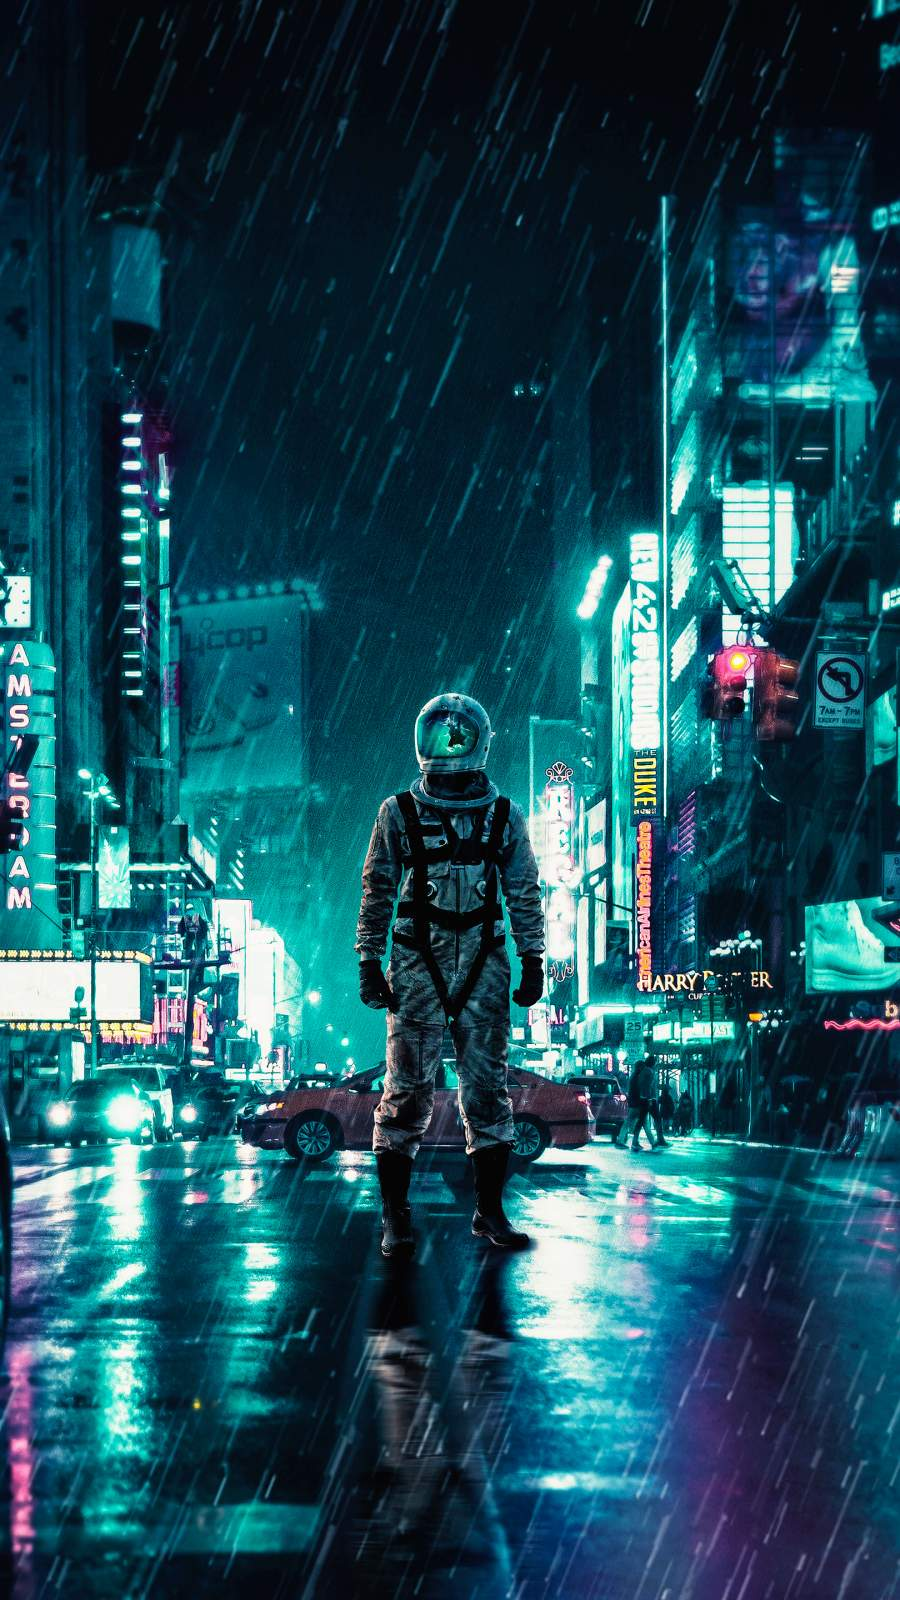 Another Rainy Night Astronaut iPhone Wallpaper